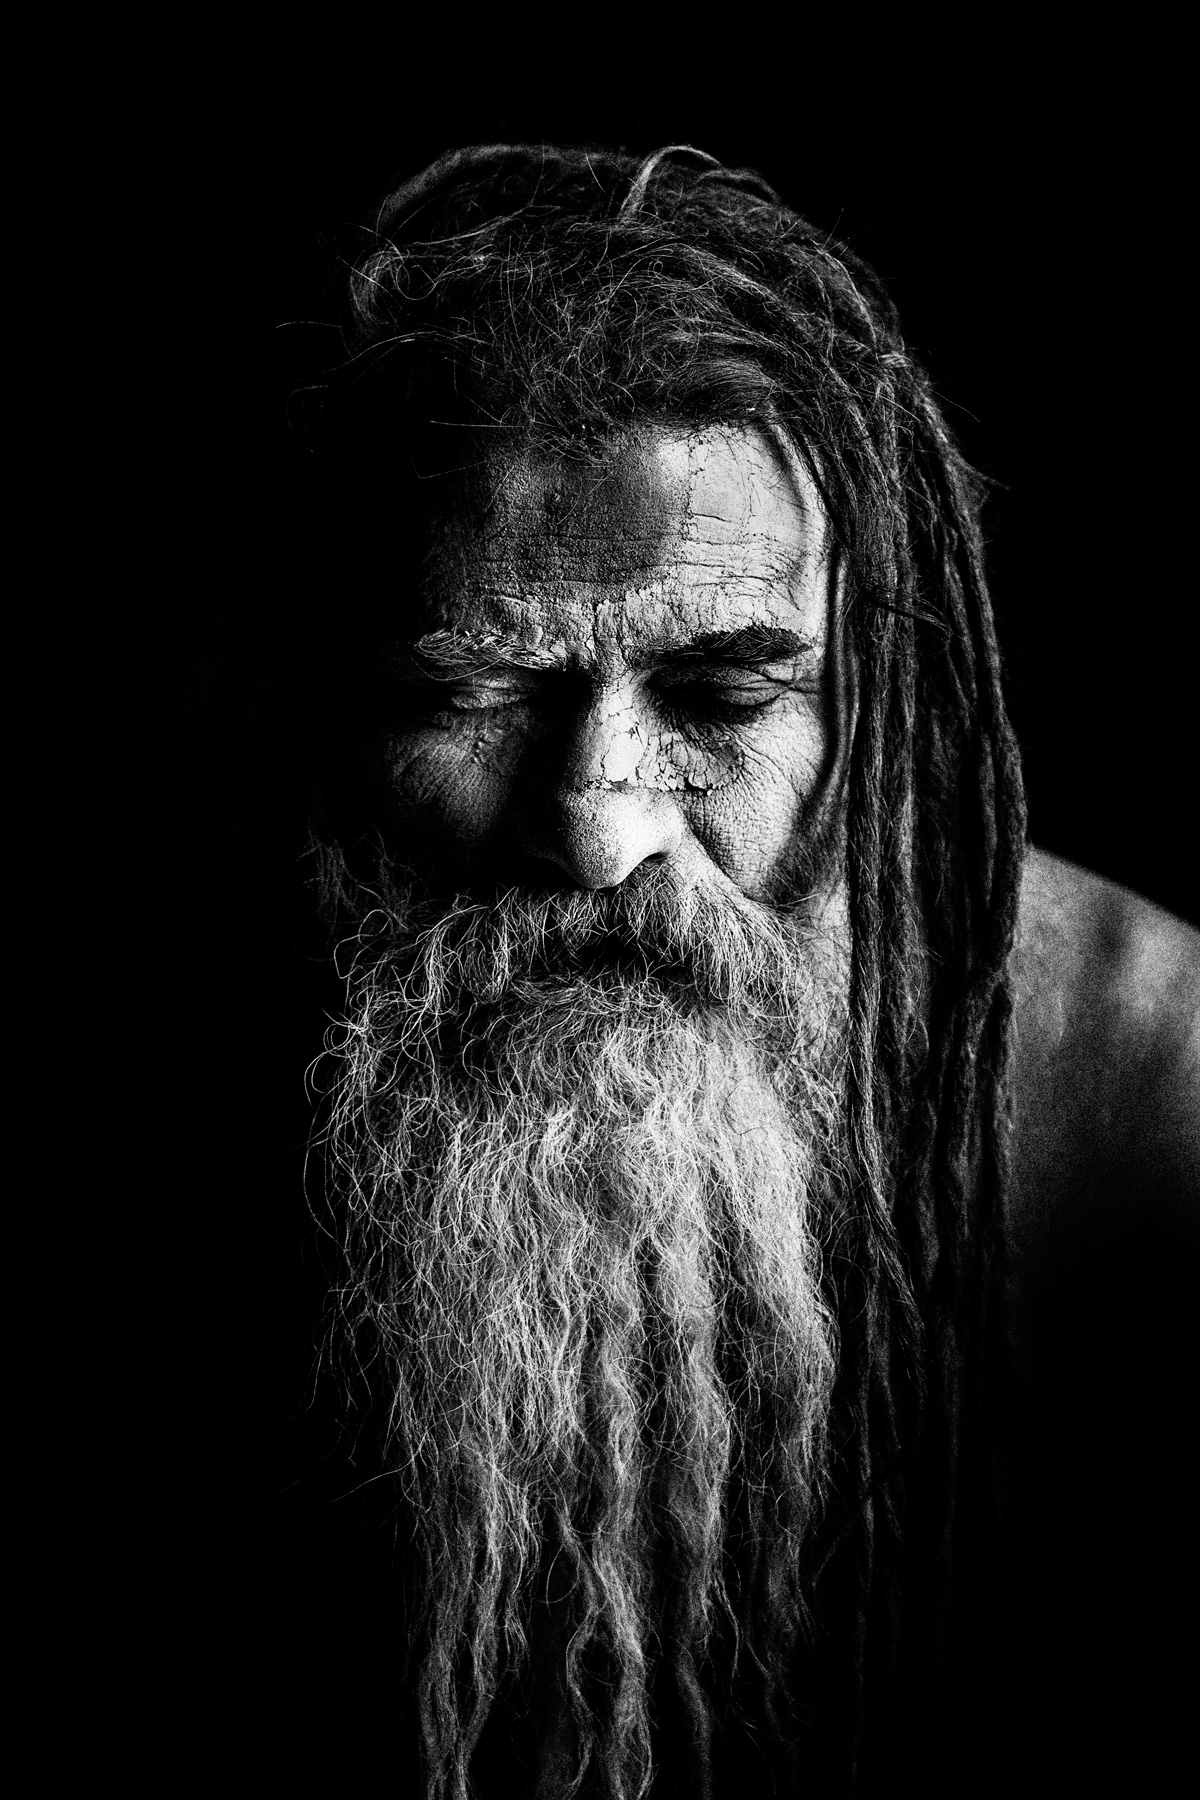 Eyes Closed Portrait of a Nepalese Sadhu: Black and White Portrait Photography by Jean Tran and Élysée Lang